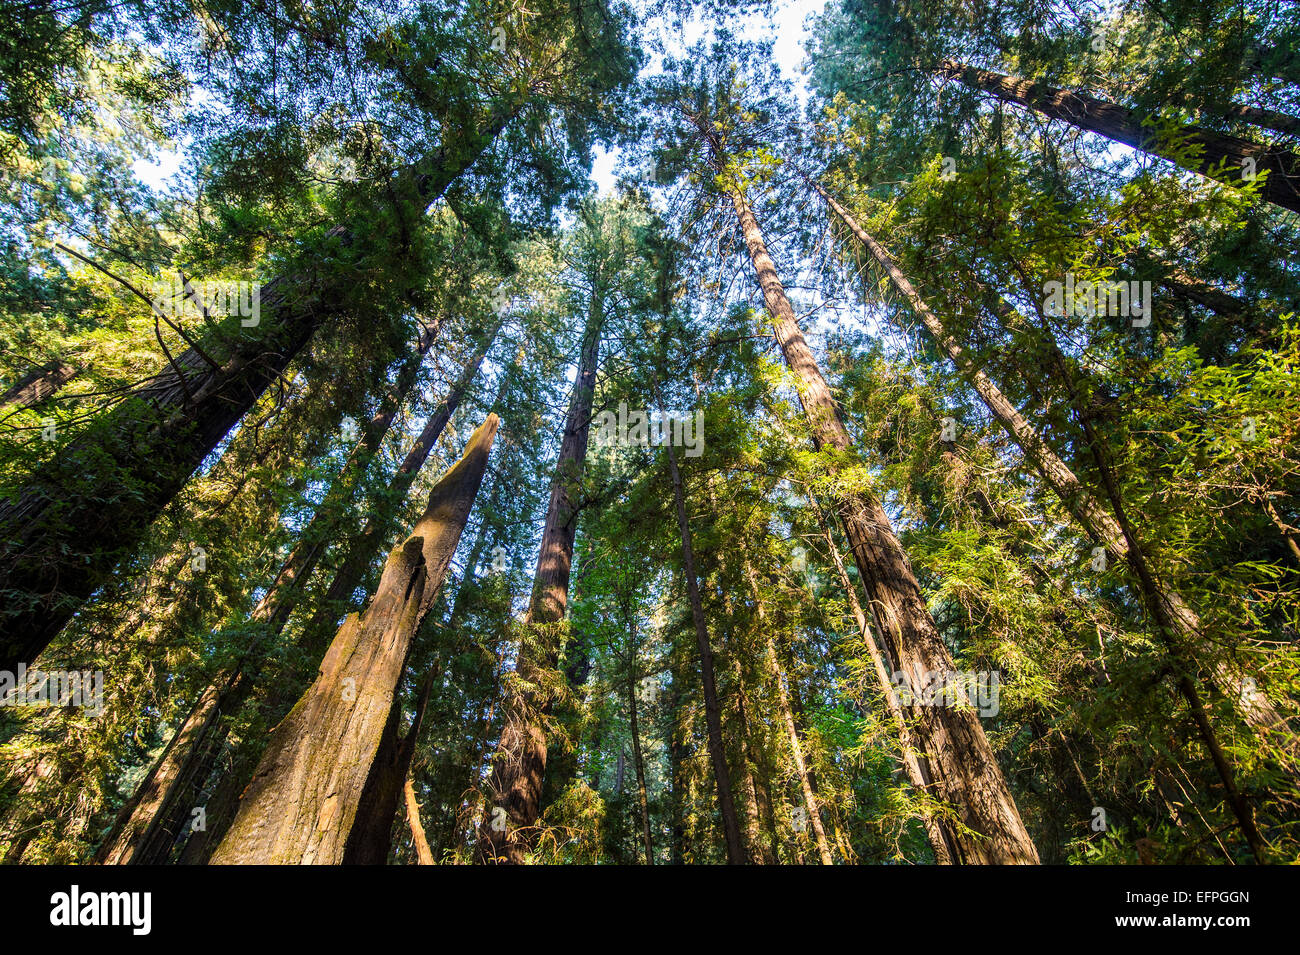 The treetops of the Redwood trees in the Avenue of the Giants, Northern California, USA - Stock Image